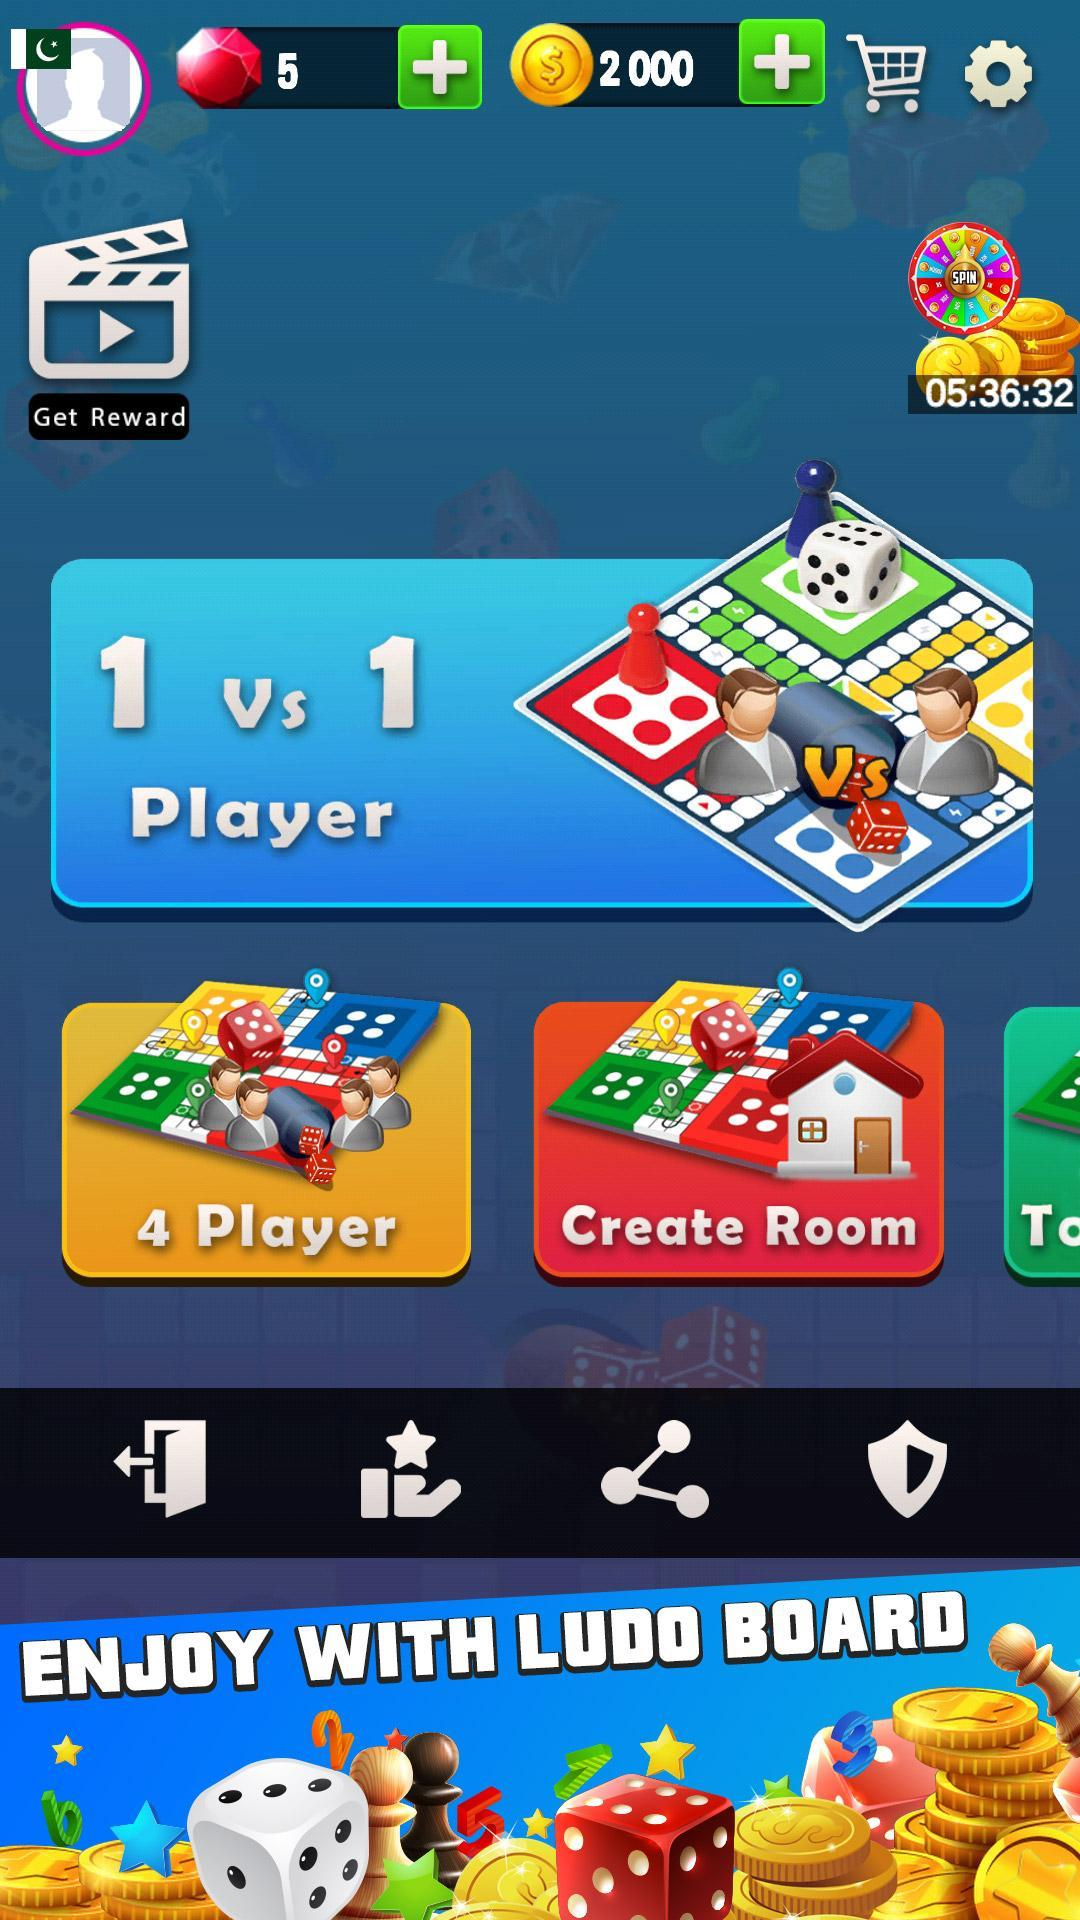 King of Ludo Dice Game with Free Voice Chat 2020 1.5.2 Screenshot 1